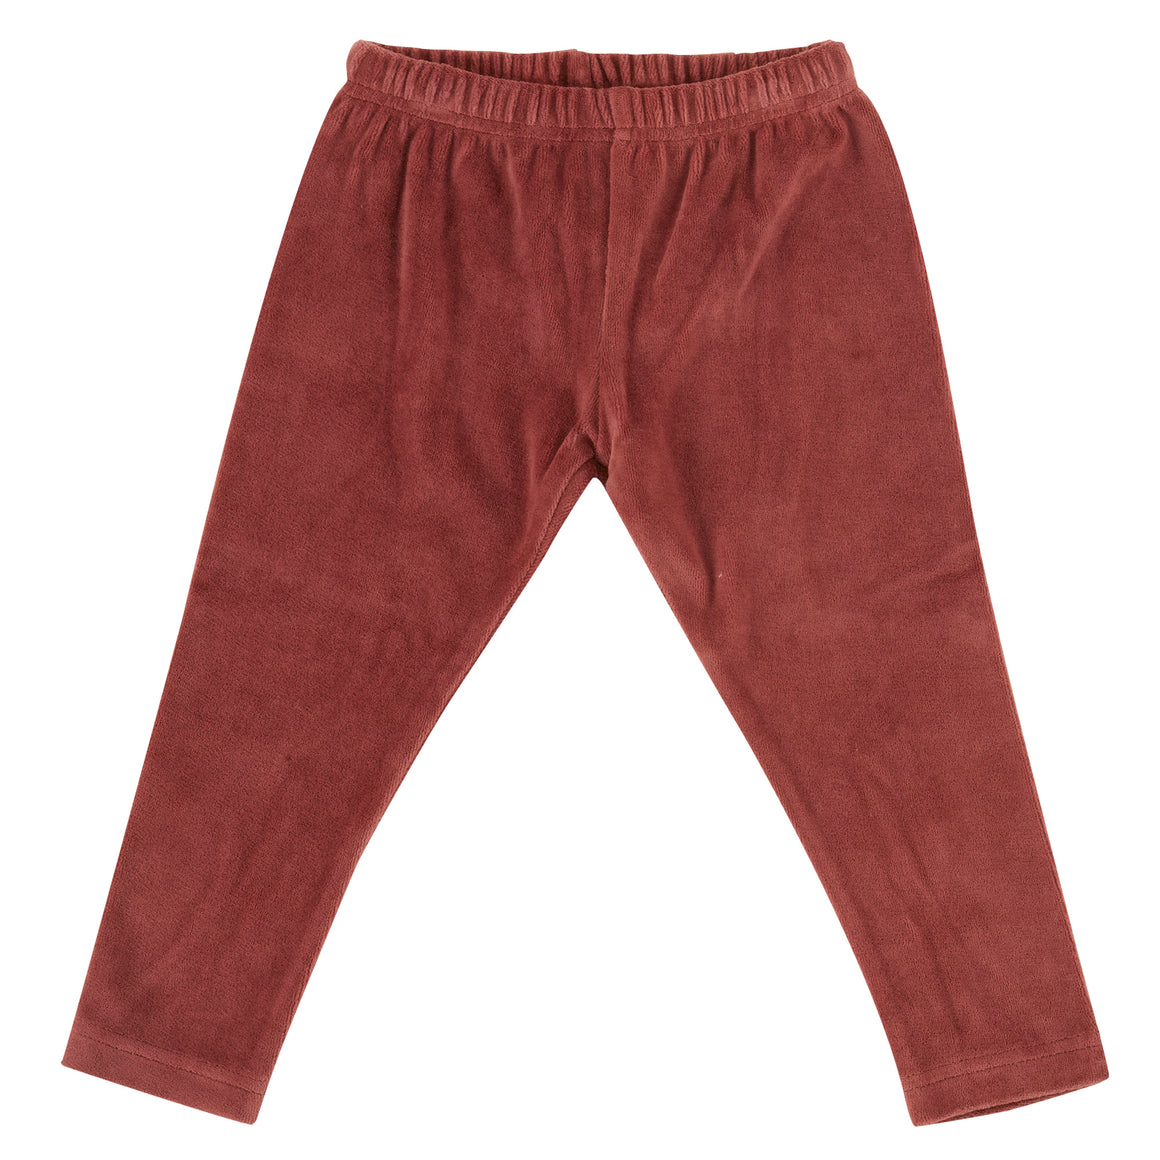 Velour leggings in Spice